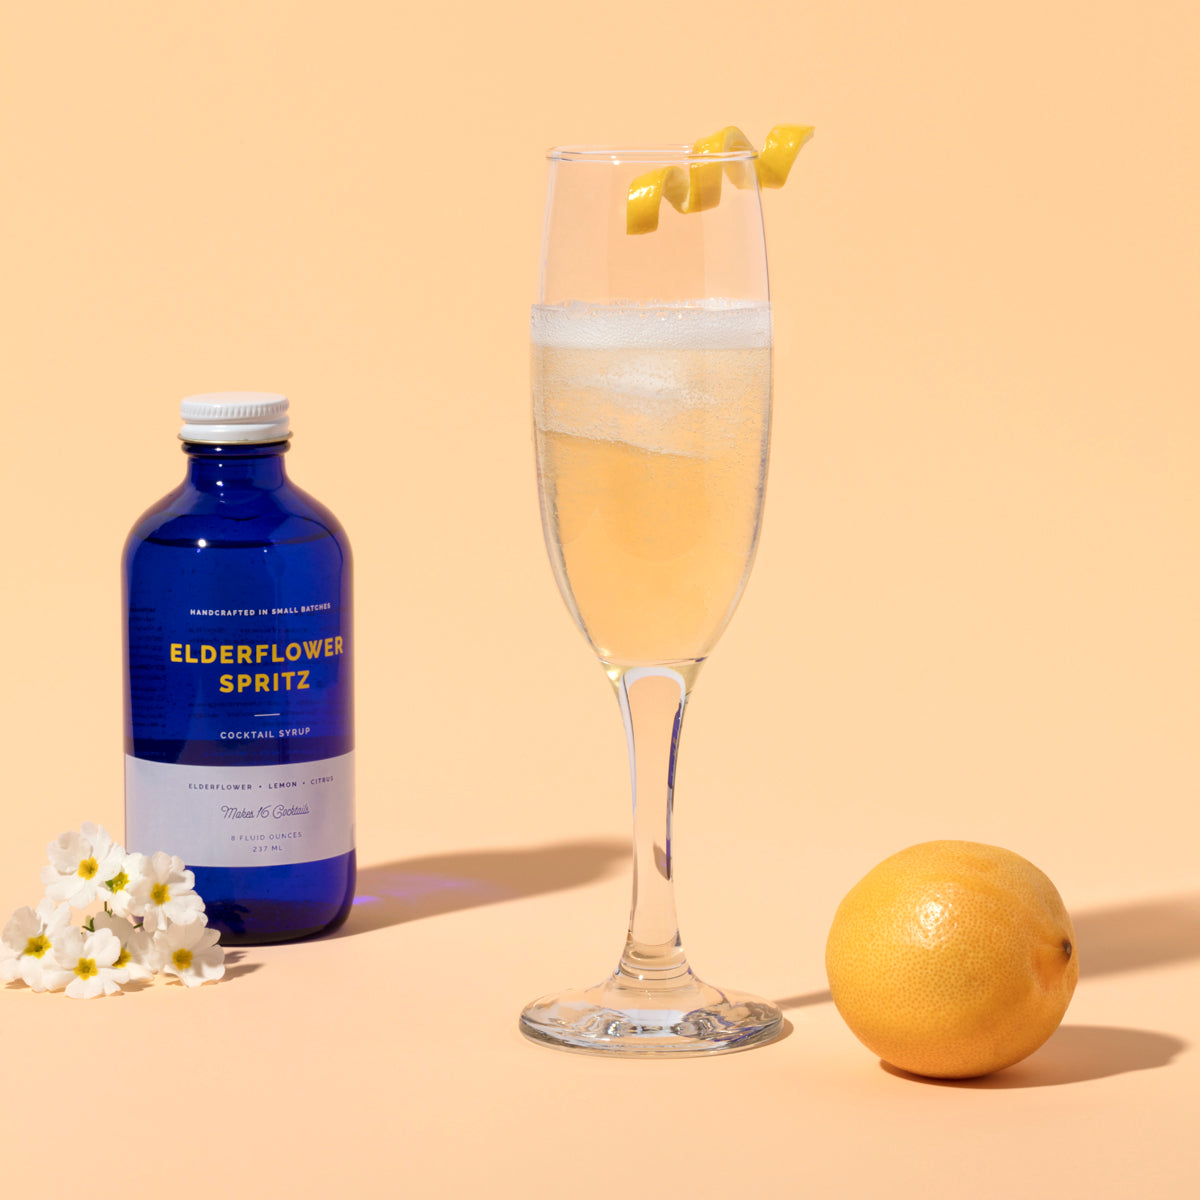 The Elderflower Spritz Cocktail Syrup